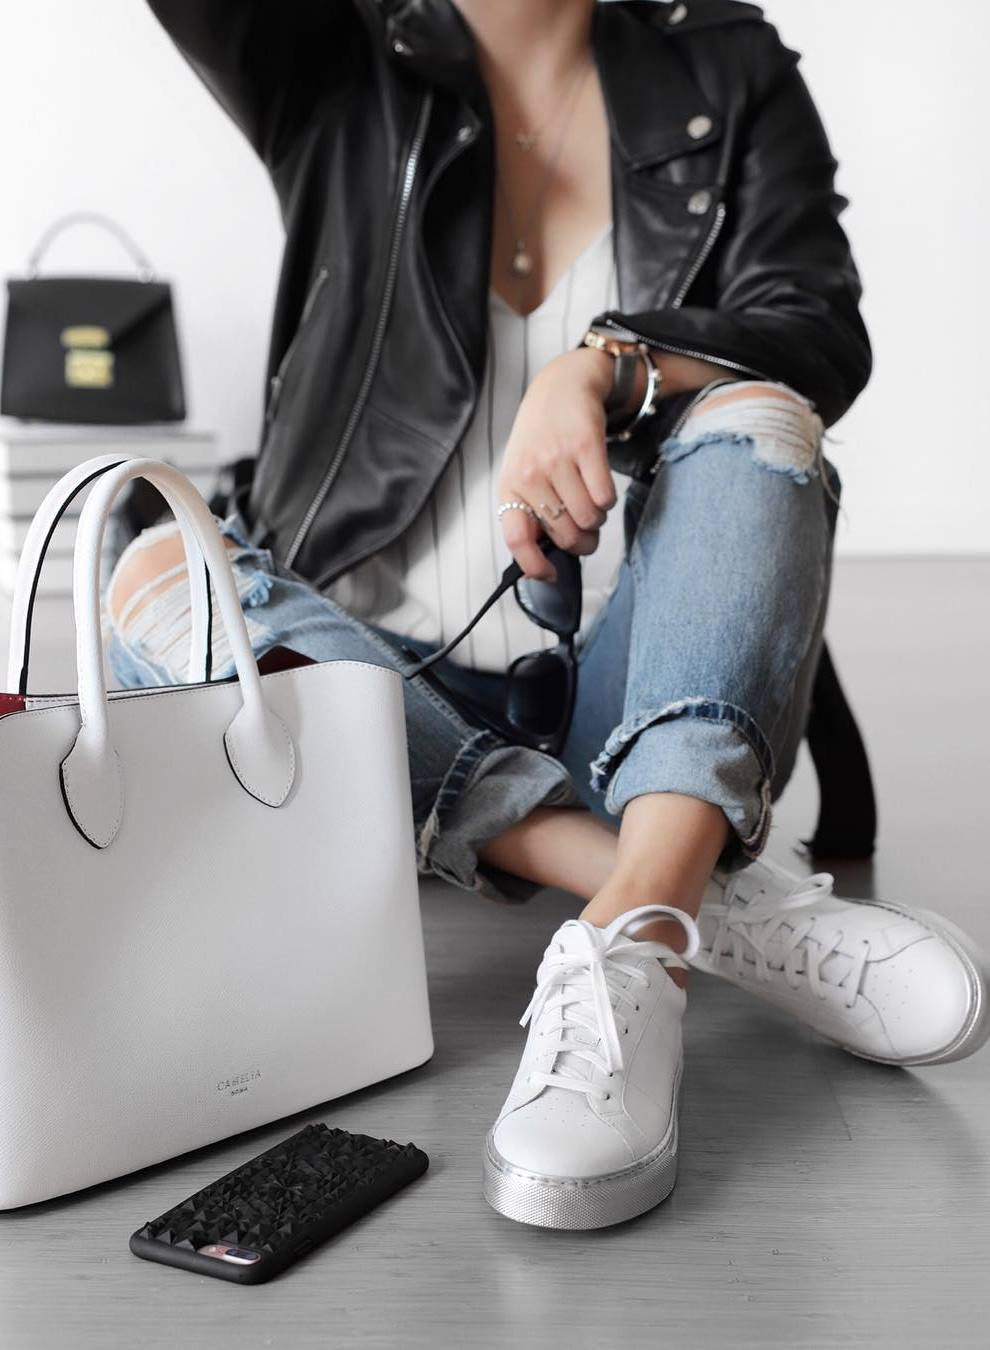 street style inspiration / white bag + rips + sneakers + striped top + black leather jacket